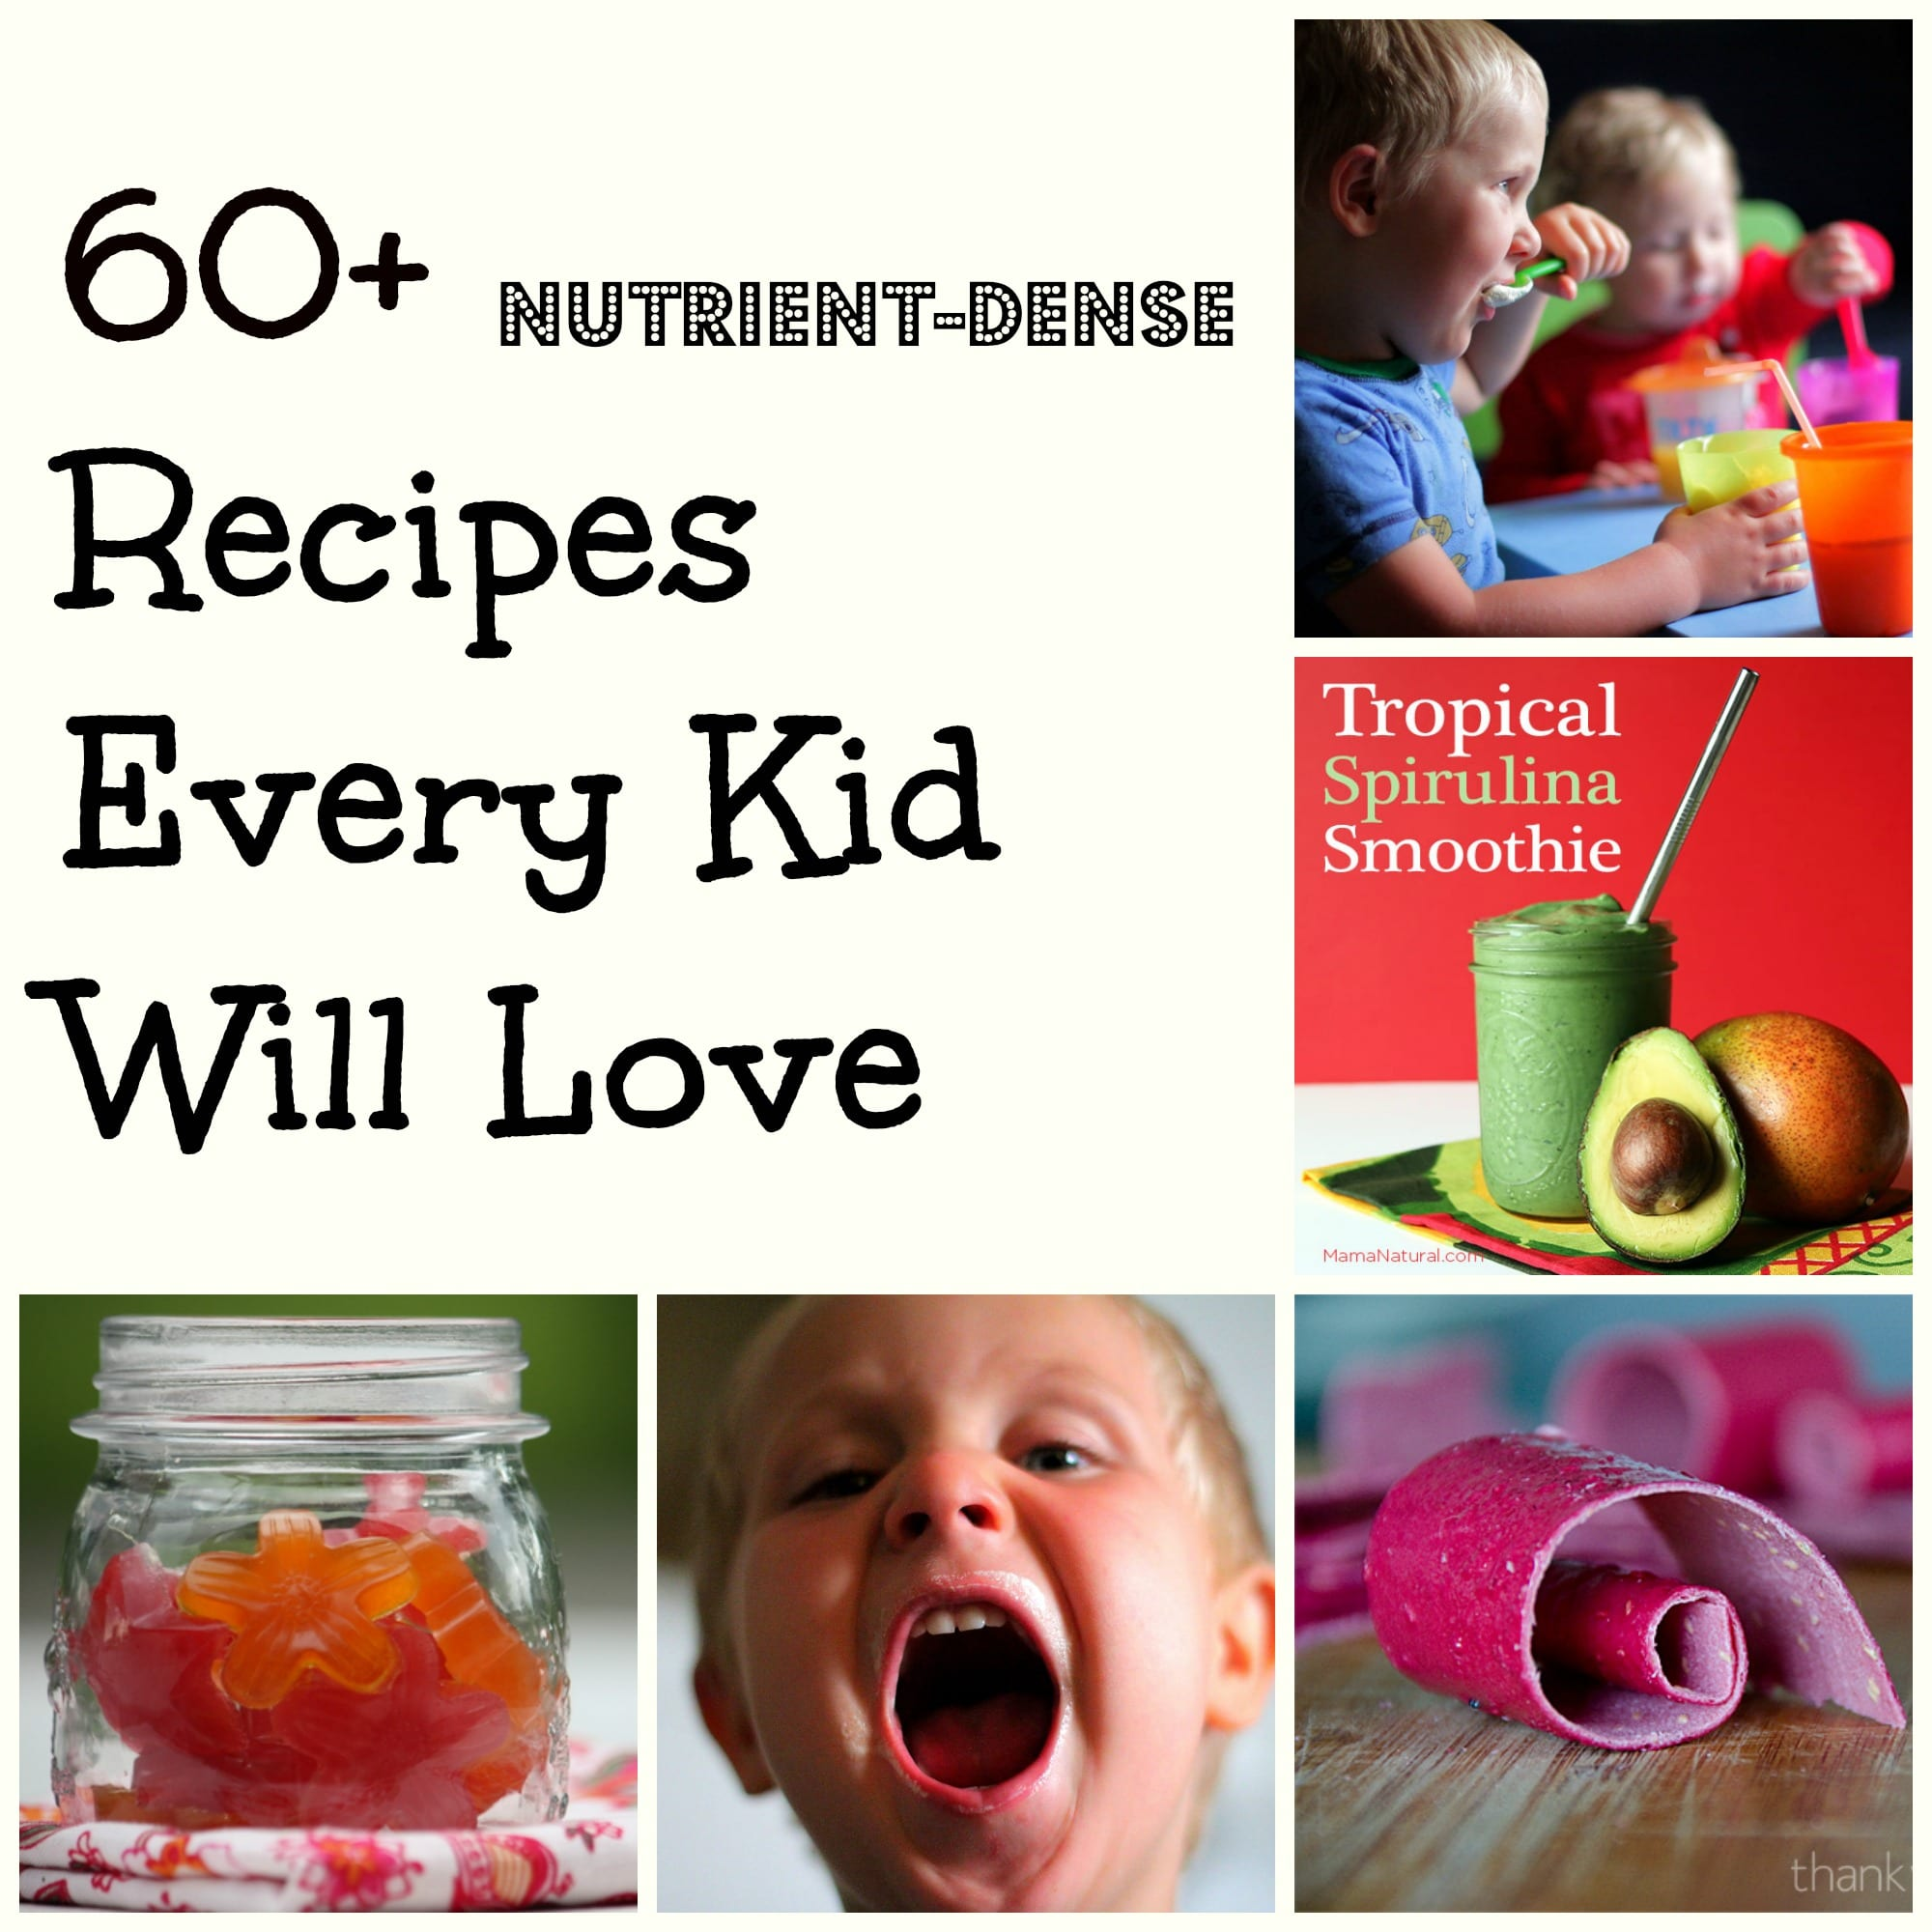 17 Easy Campfire Treats Your Kids Will Love: 60 Plus Nutrient Dense Recipes Every Kid Will Love